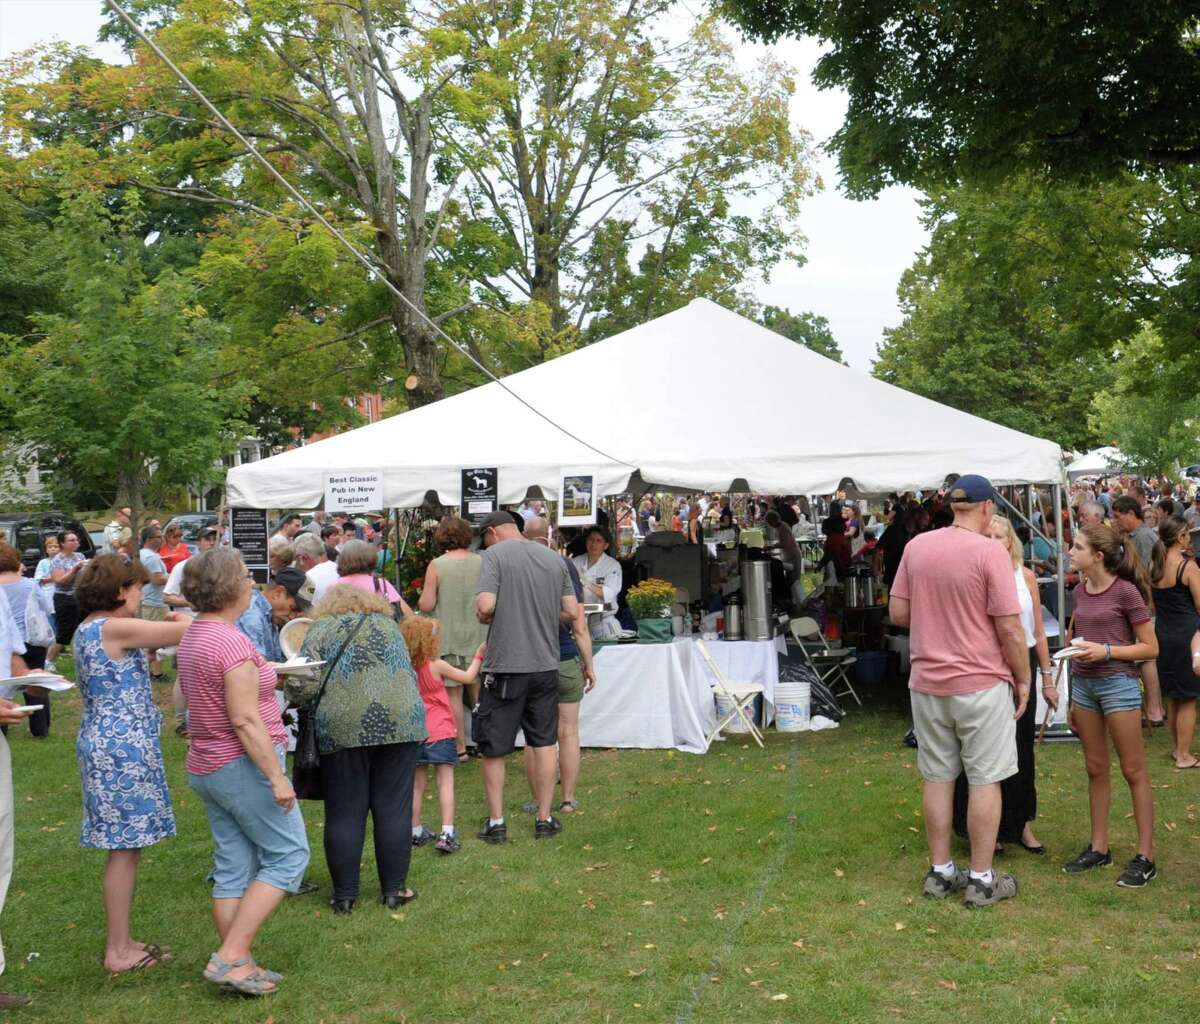 Click through the slideshow for a look at some of the restaurants and other establishments that are set to participate in the Taste of New Milford event on Sept. 6.